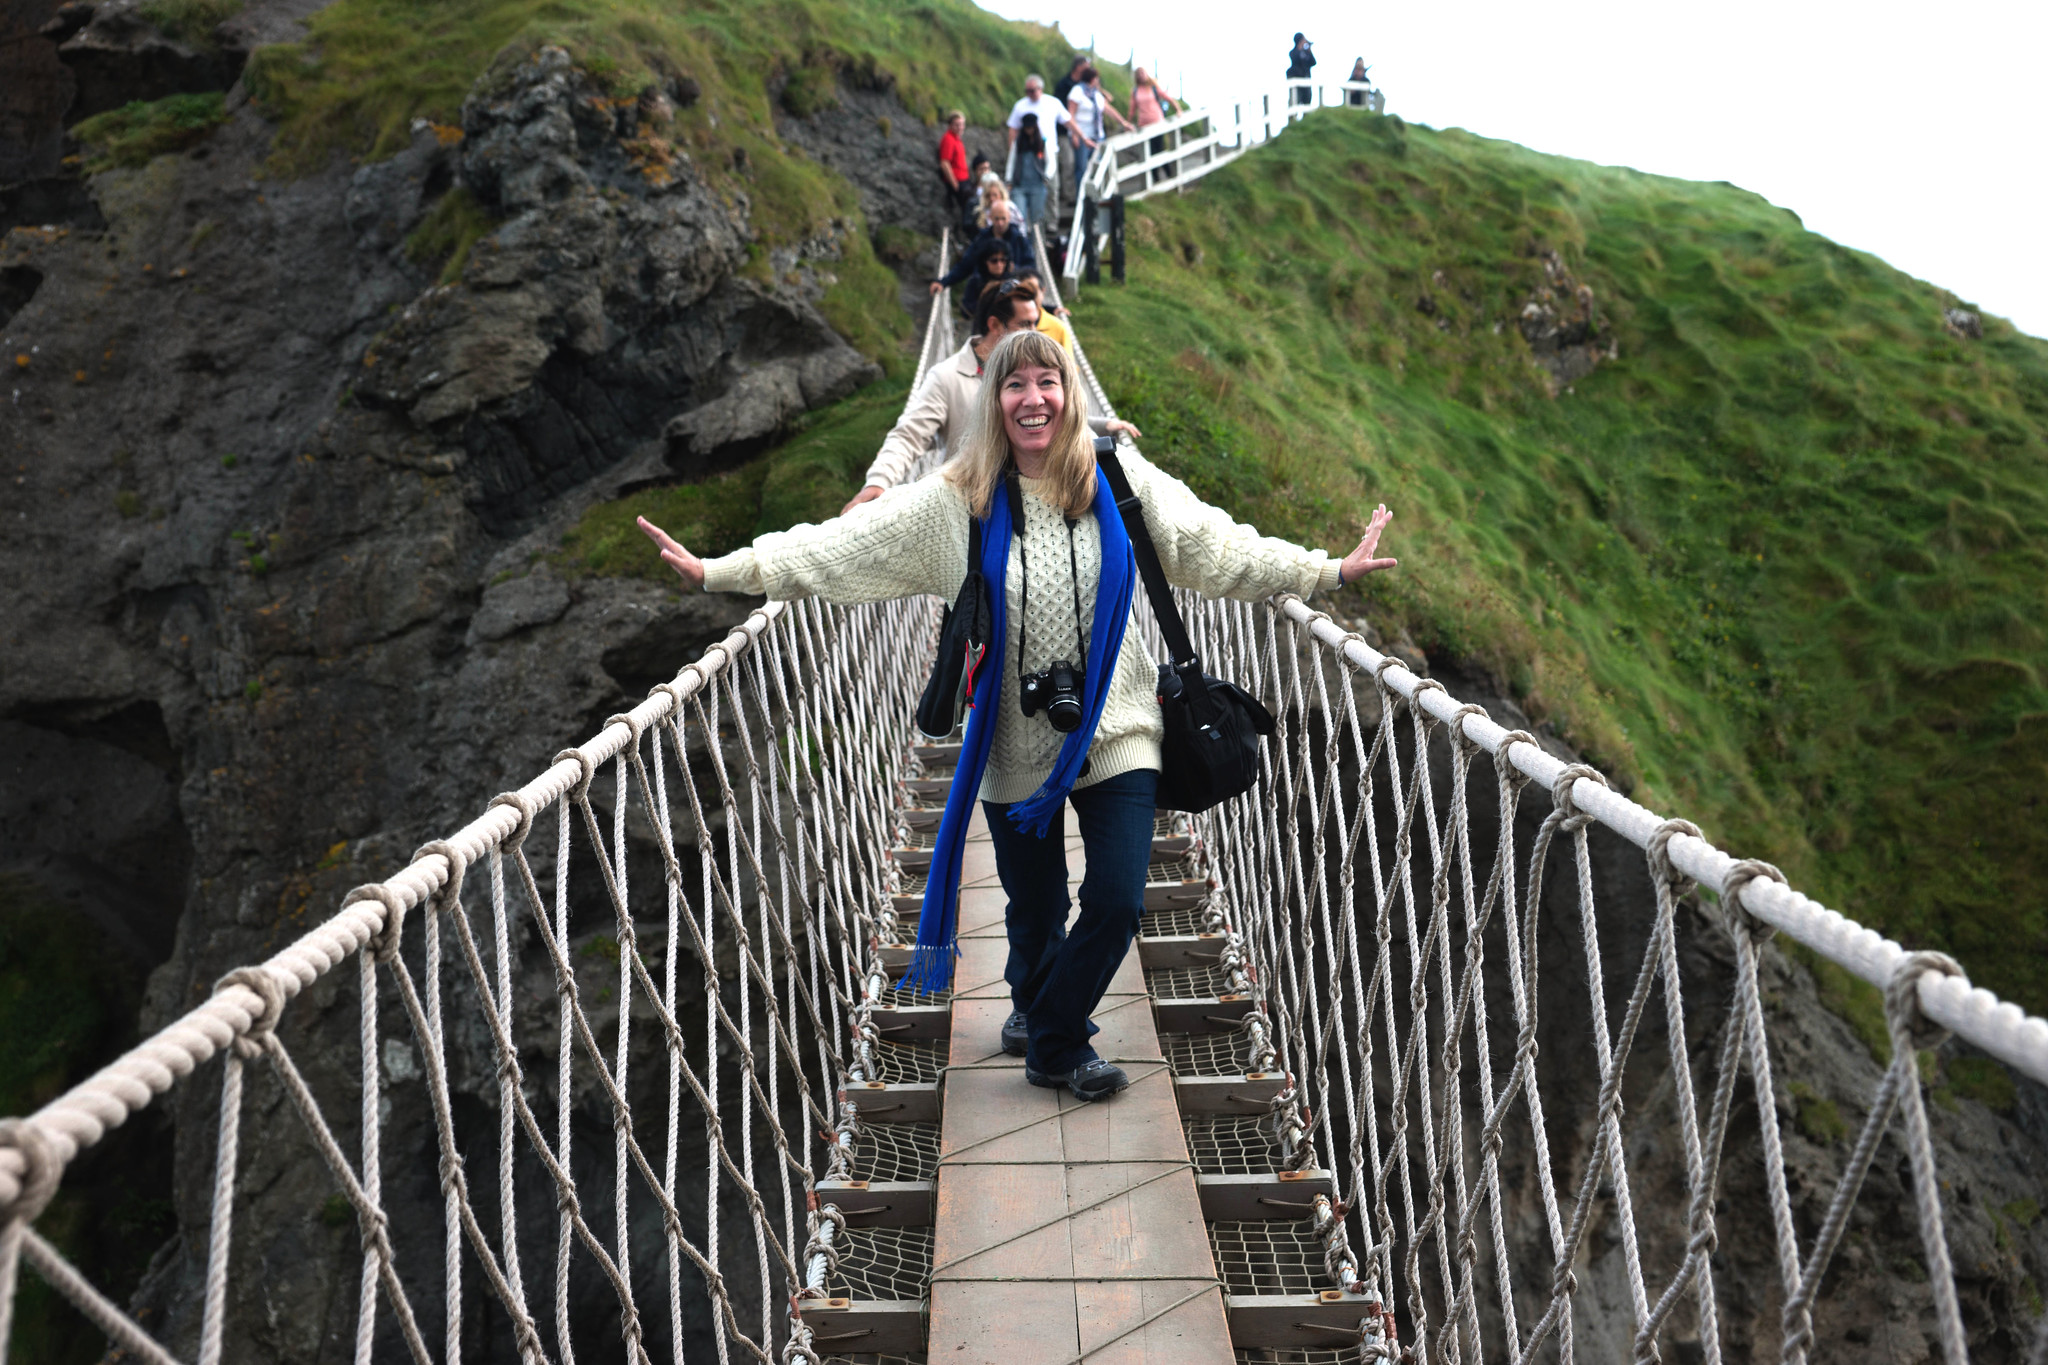 A Terrified Cynthia on The Carrick-a-Rede Rope Bridge